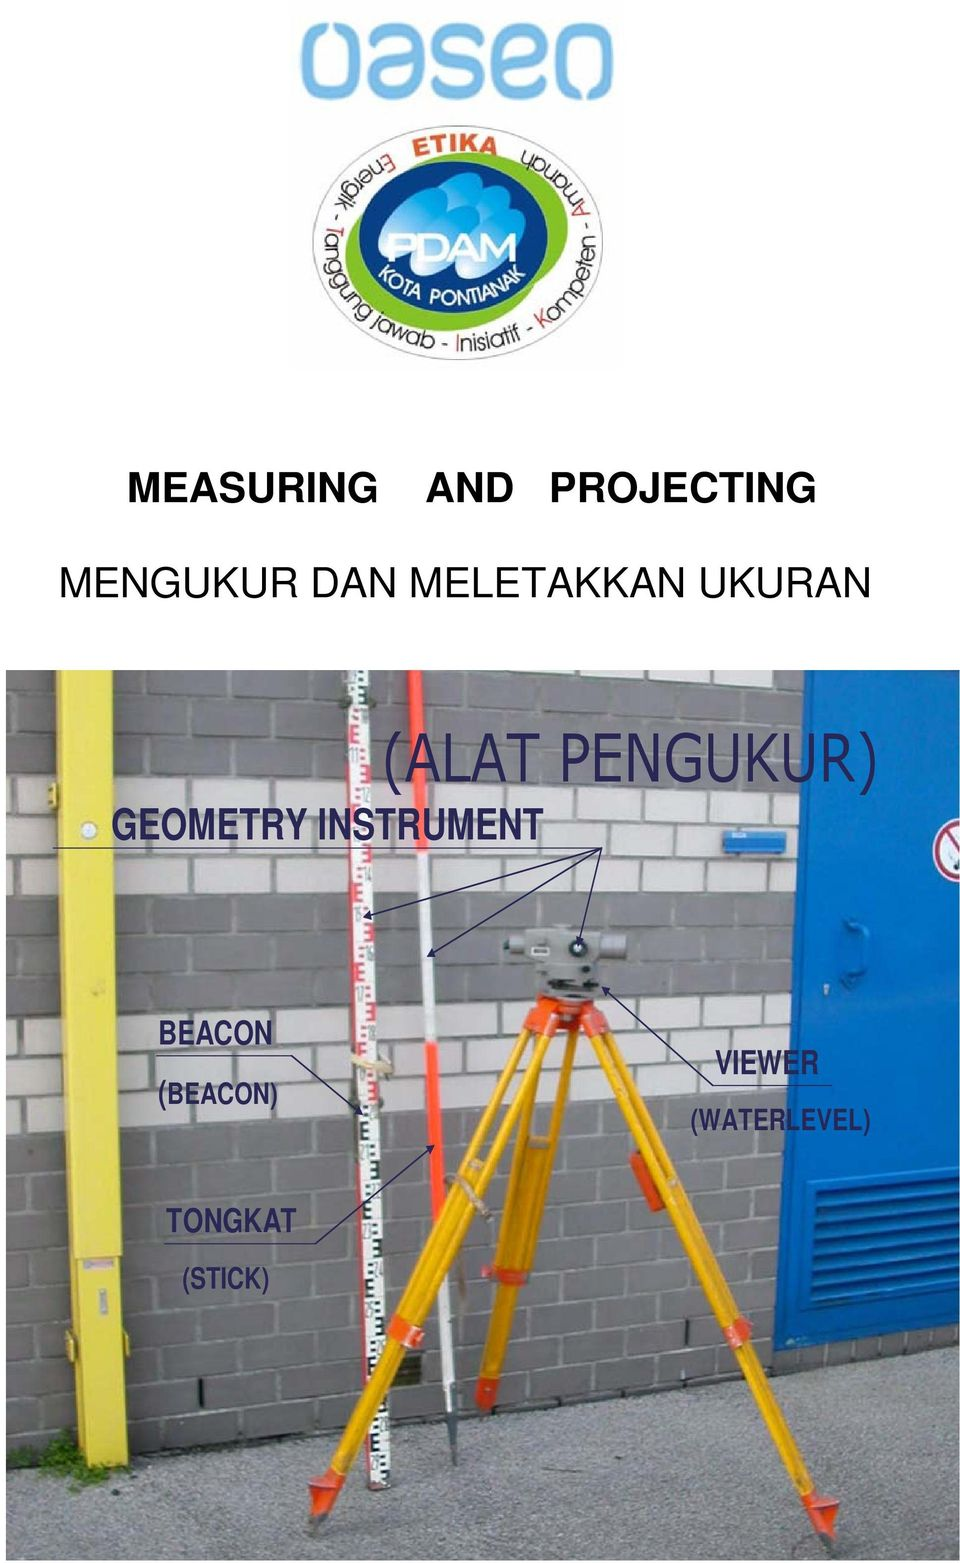 PENGUKUR) GEOMETRY INSTRUMENT